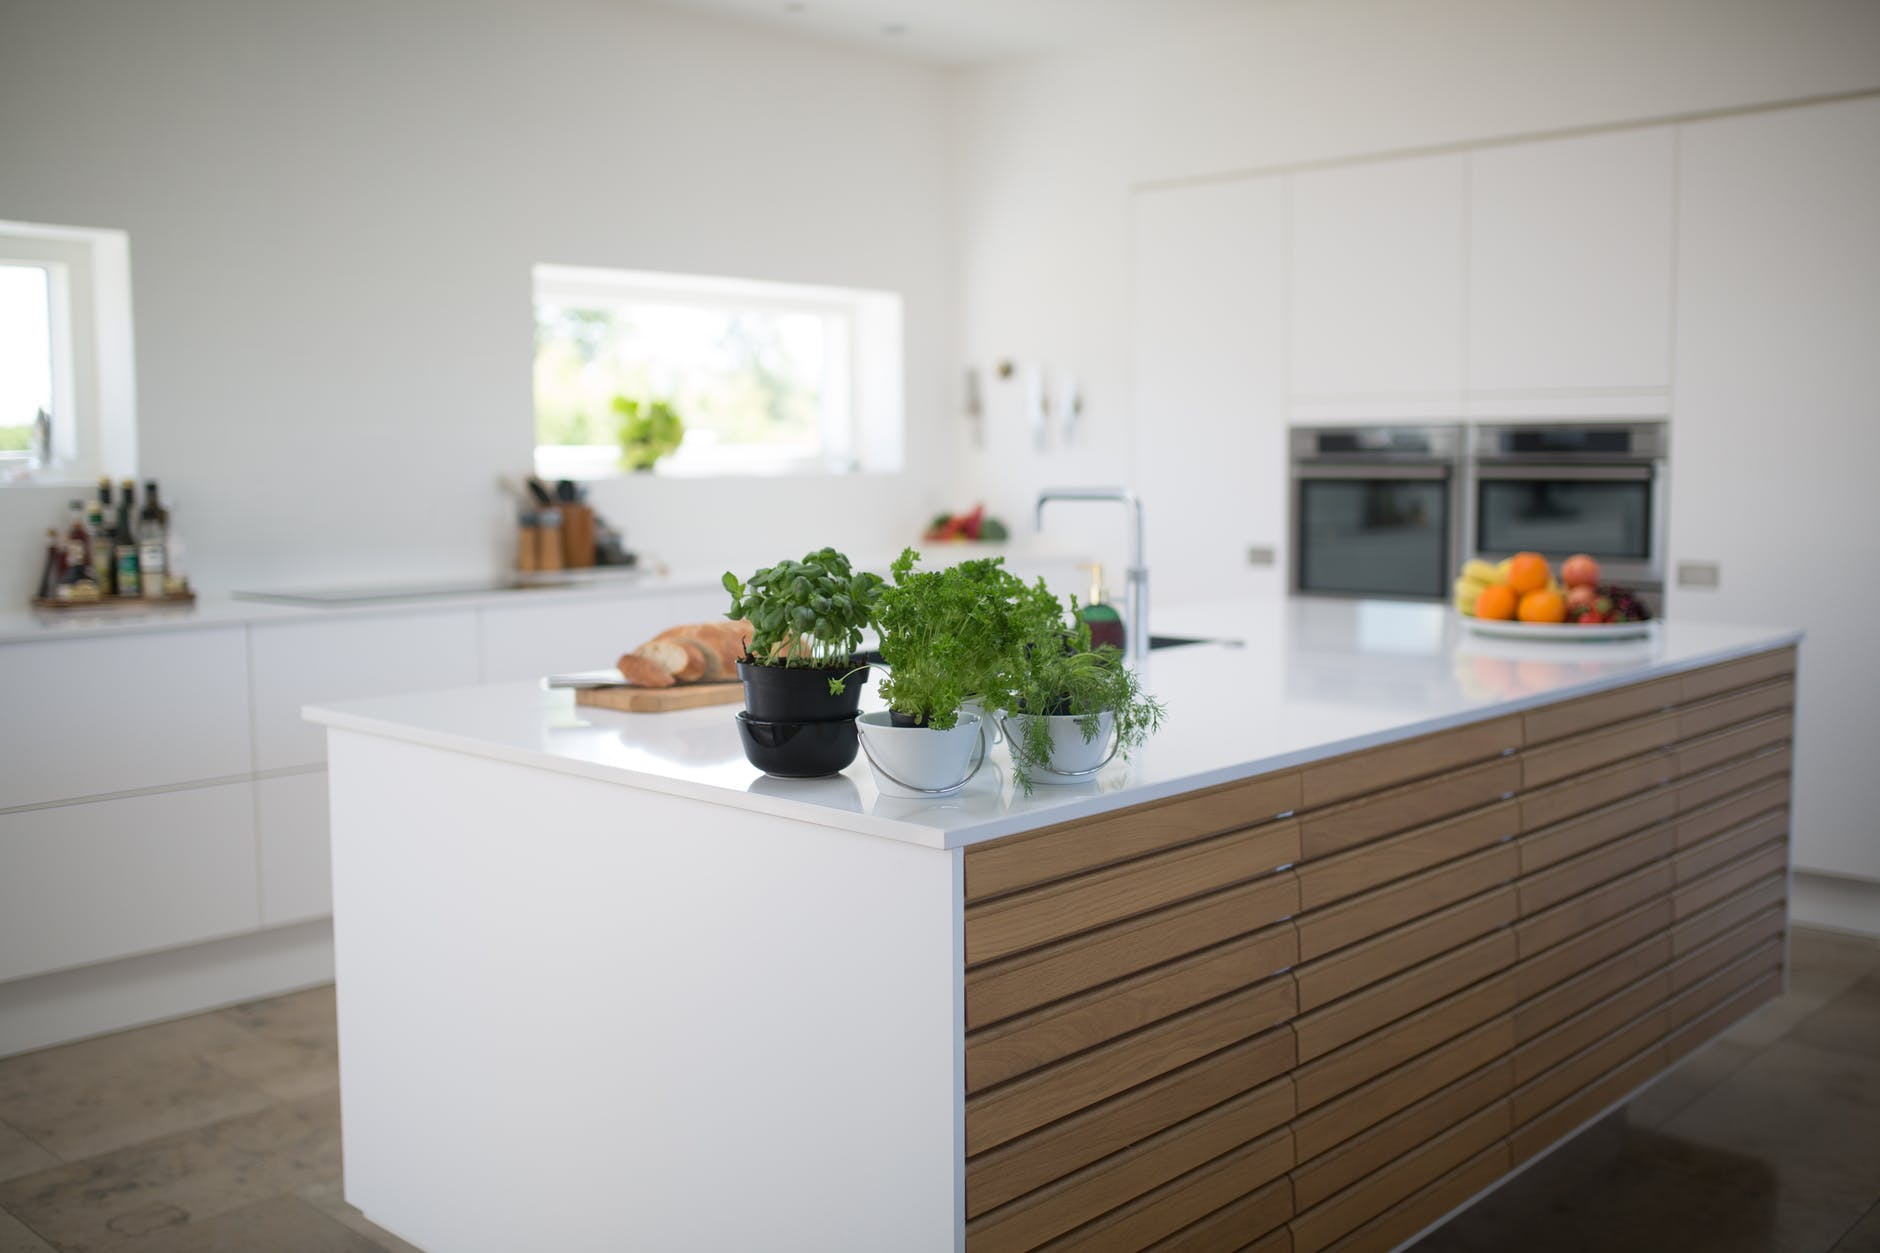 Your Dream Hdb Kitchen Design Tips And Tricks To Make It A